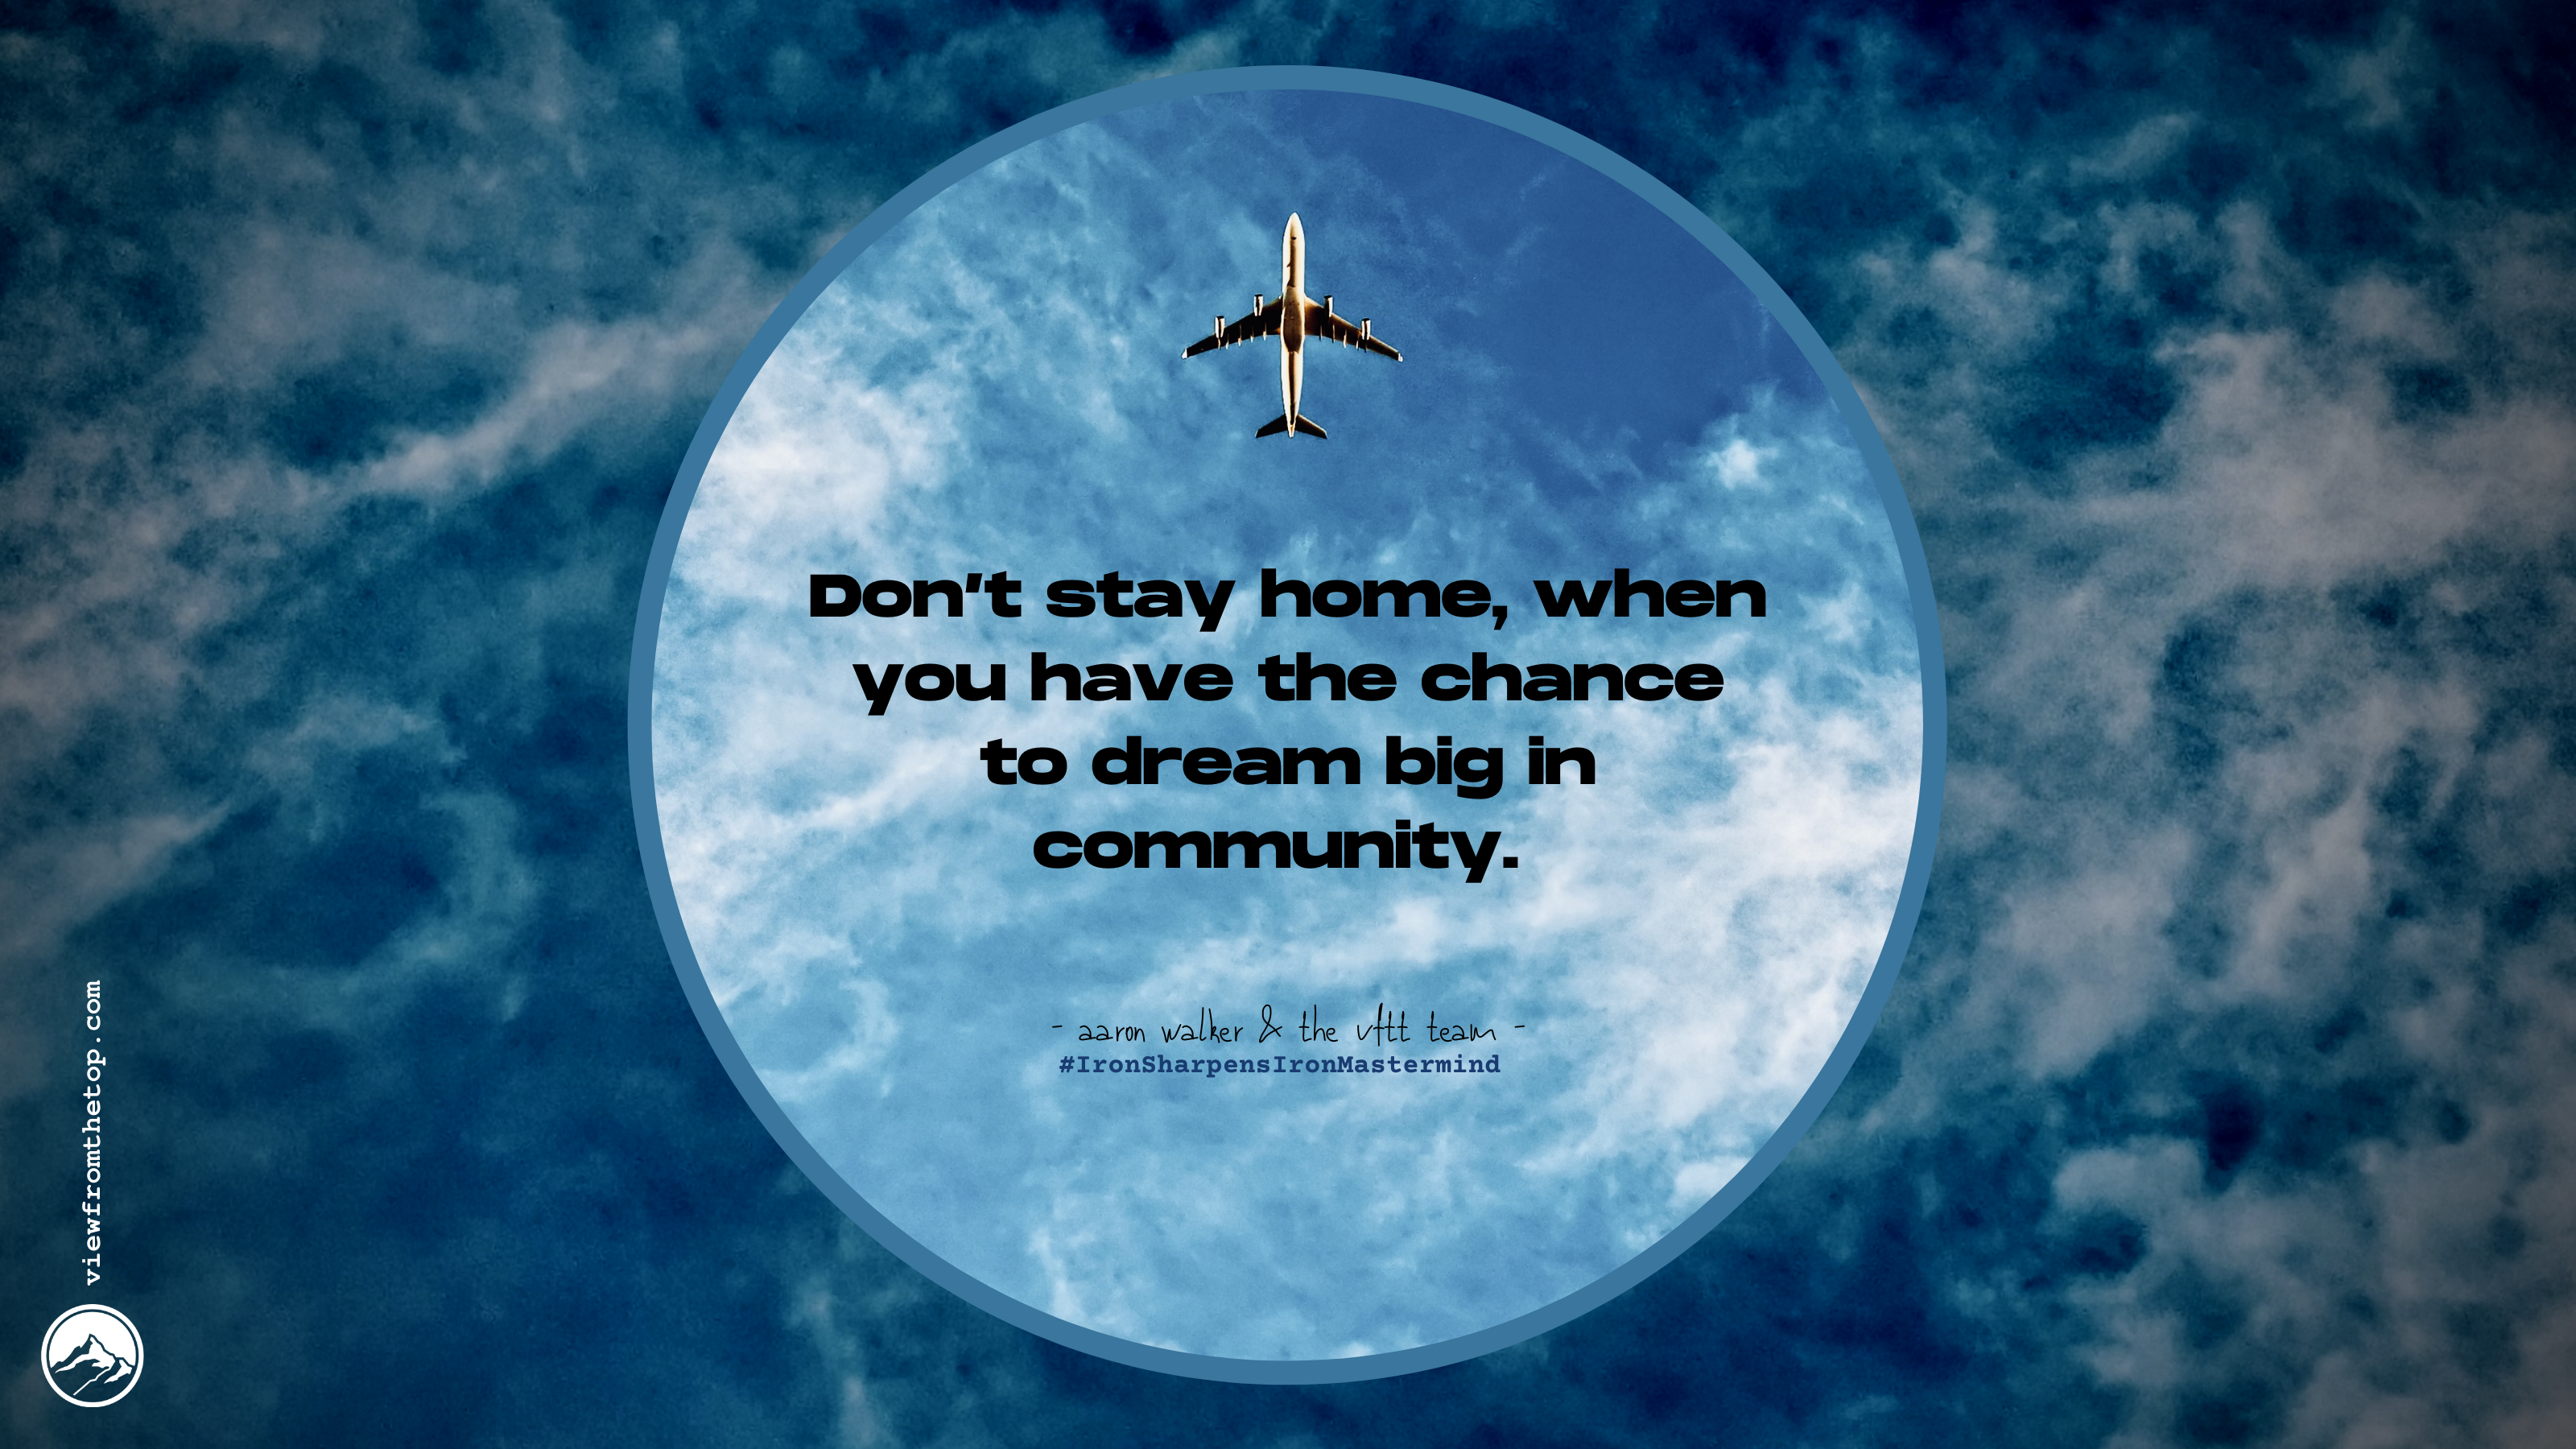 Don't stay home, when you have the chance to dream big in community.